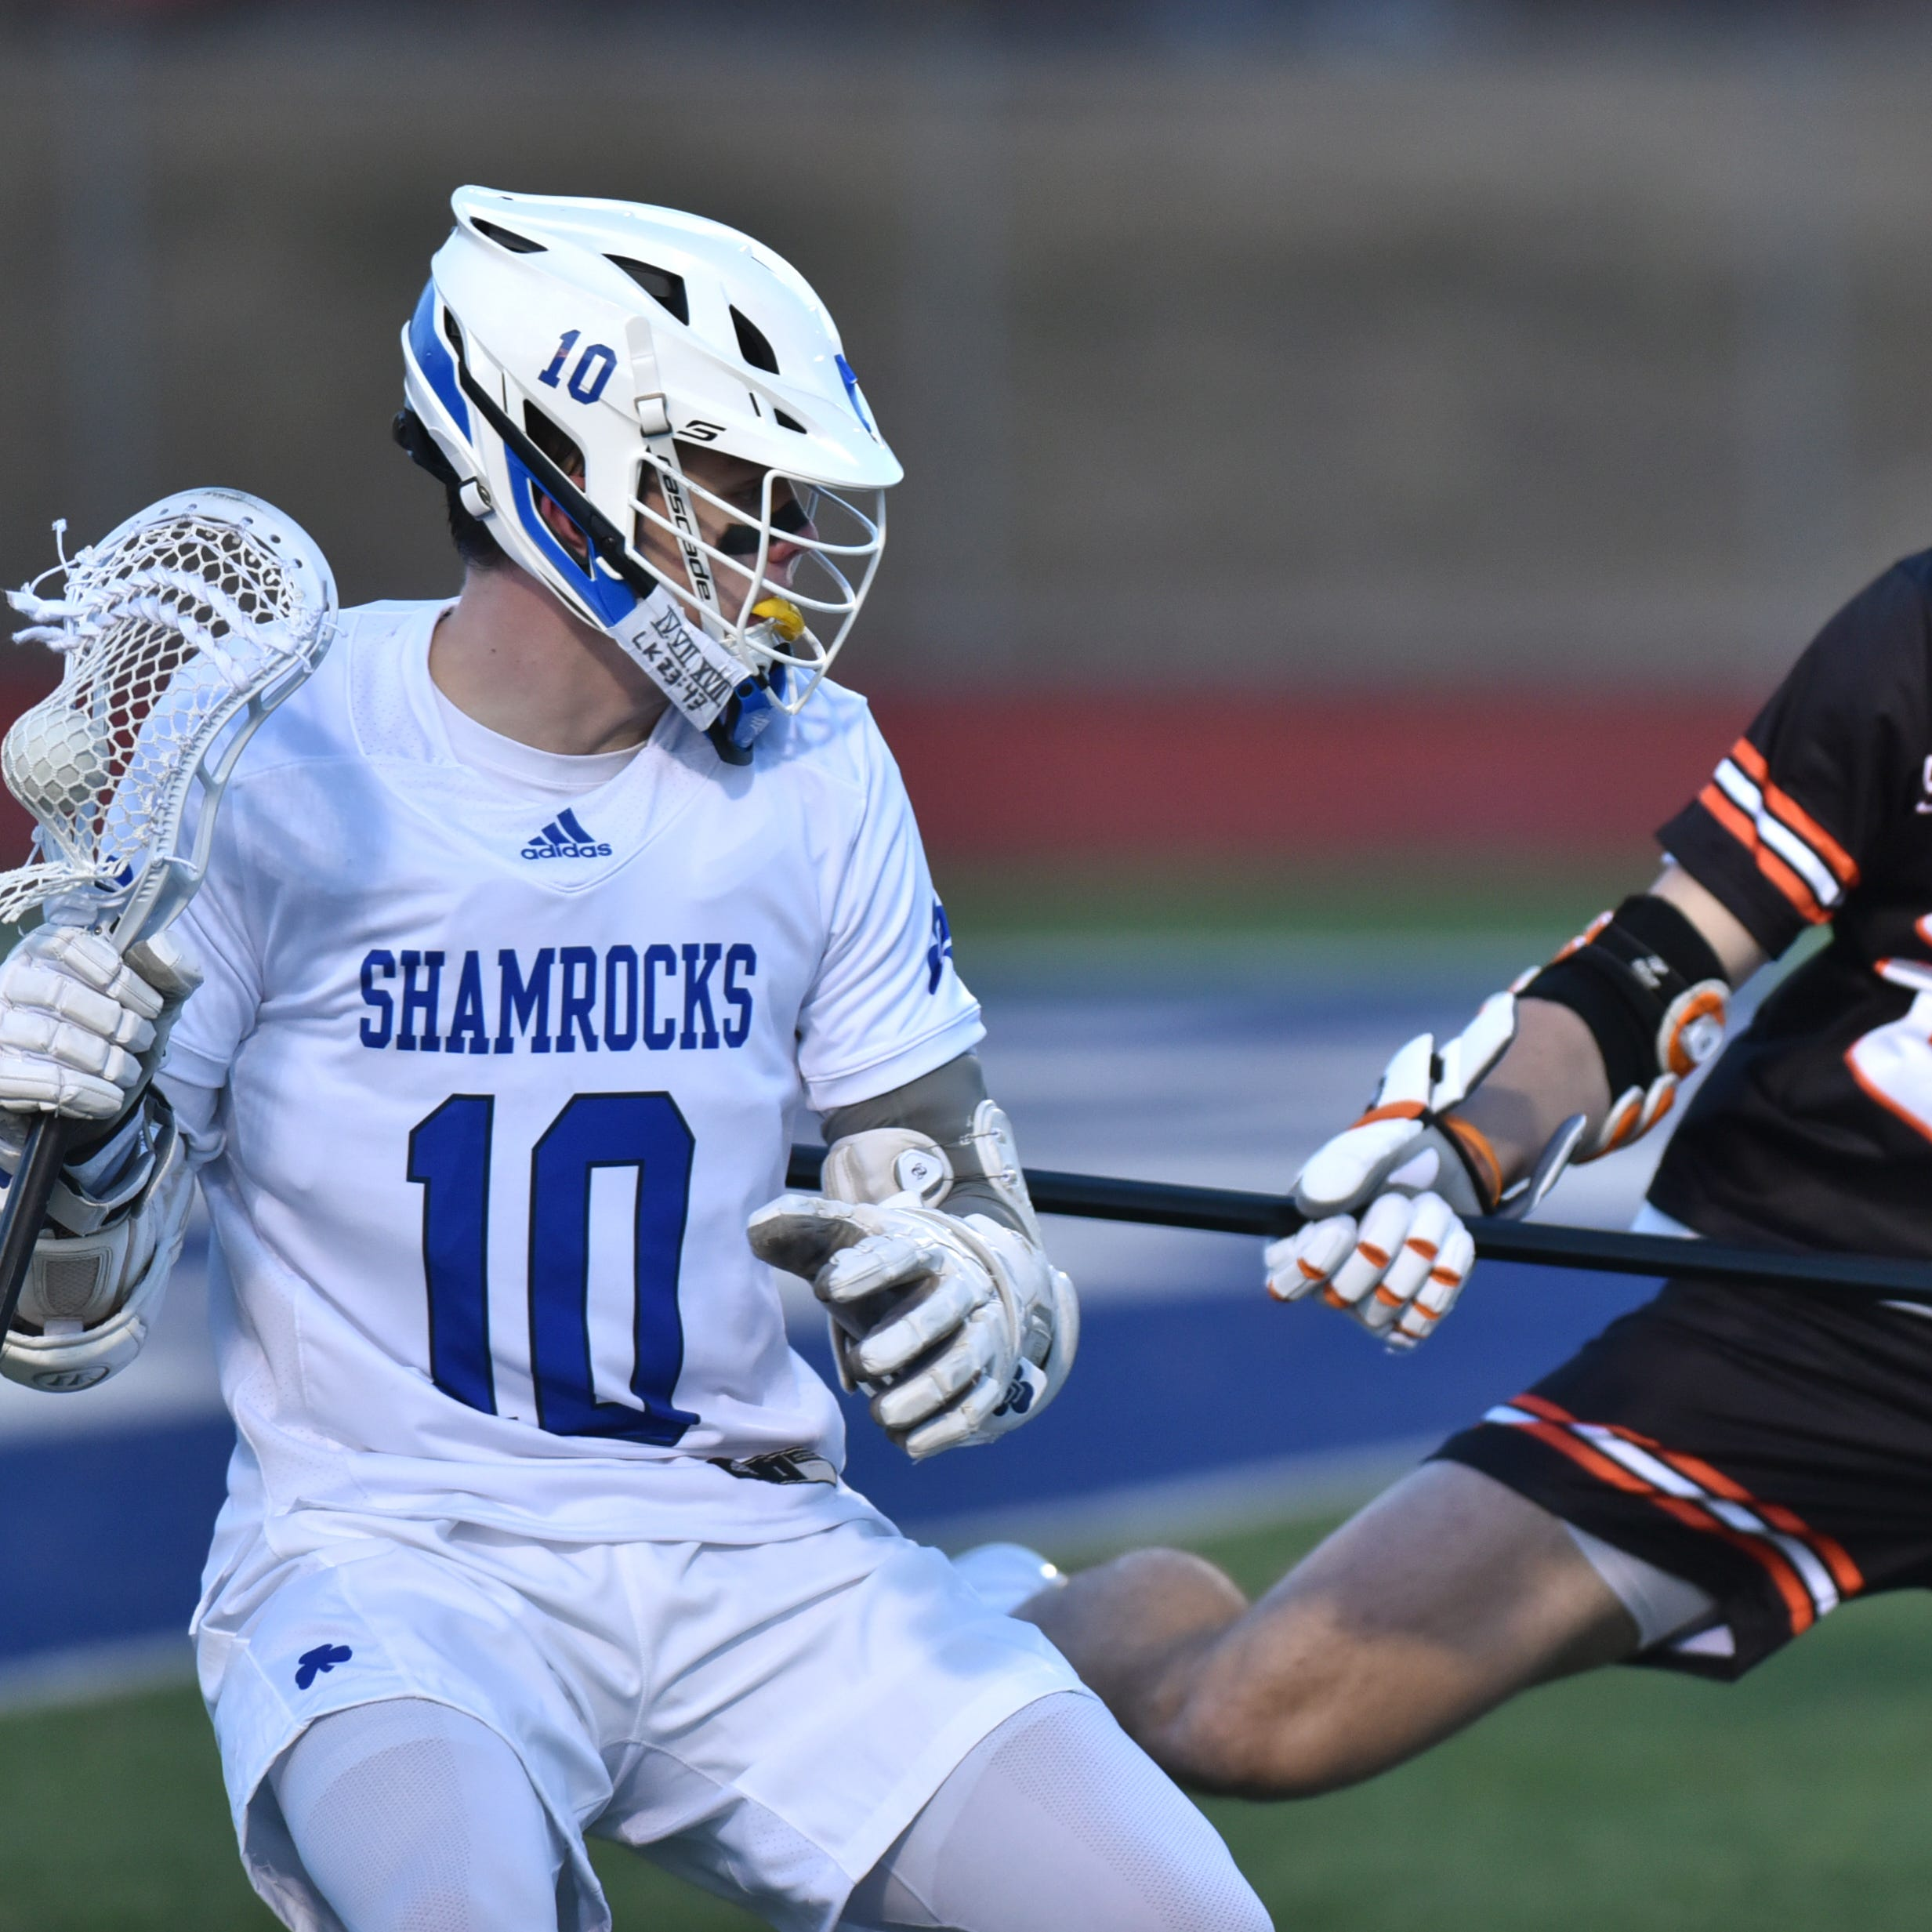 Final Michigan high school boys and girls lacrosse rankings released